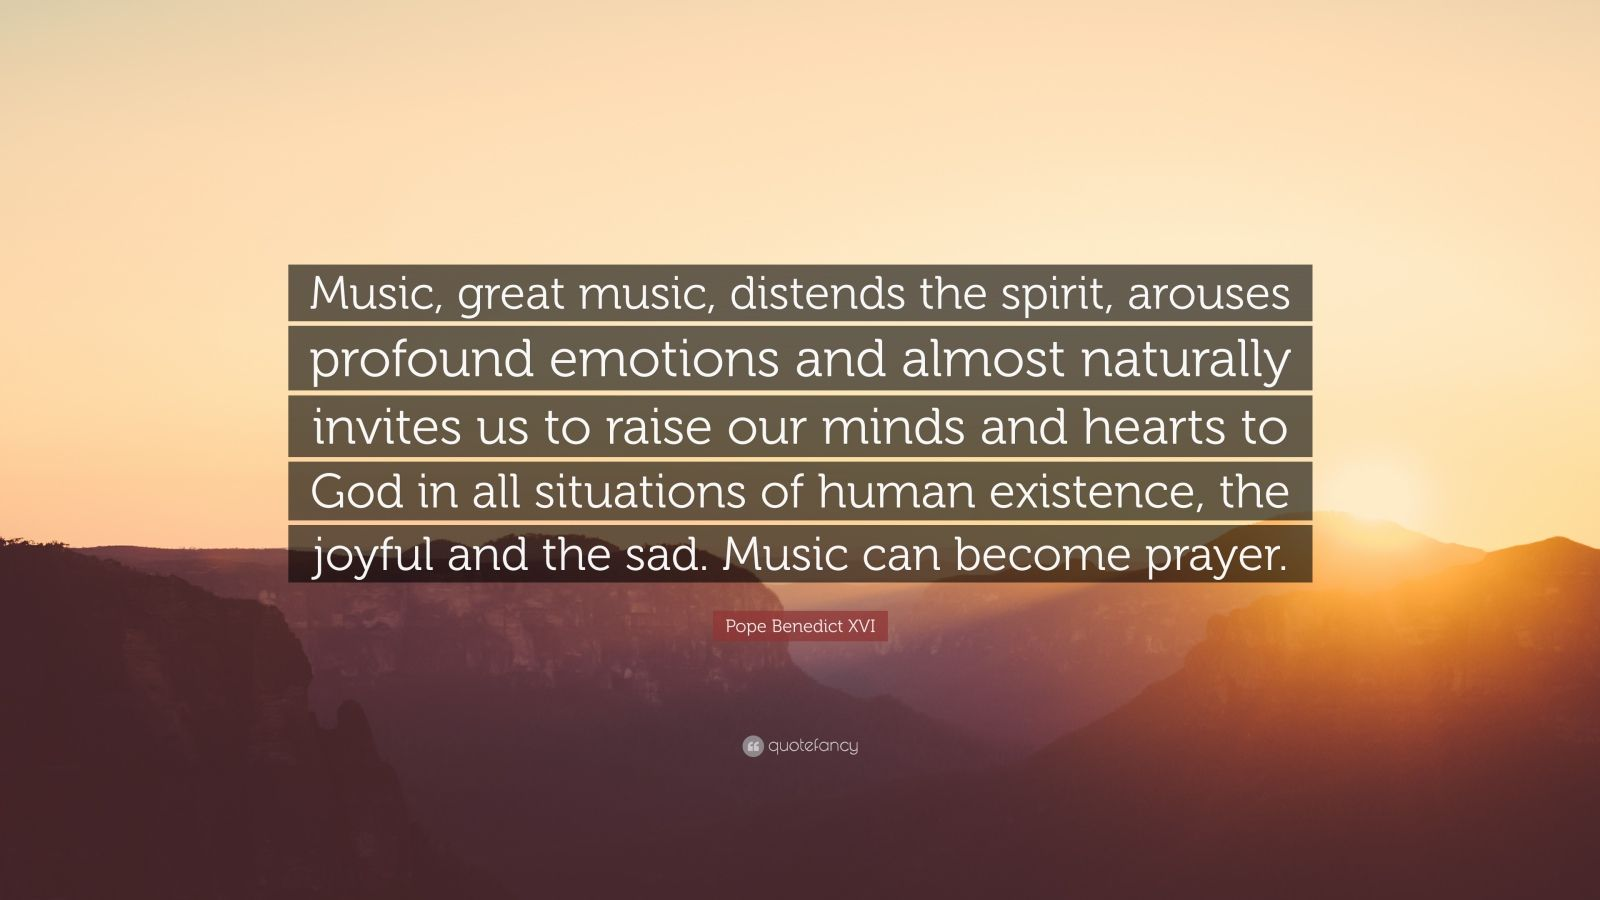 """Pope Benedict XVI Quote: """"Music, great music, distends the spirit, arouses profound emotions and almost naturally invites us to raise our minds and hearts to God in all situations of human existence, the joyful and the sad. Music can become prayer."""""""